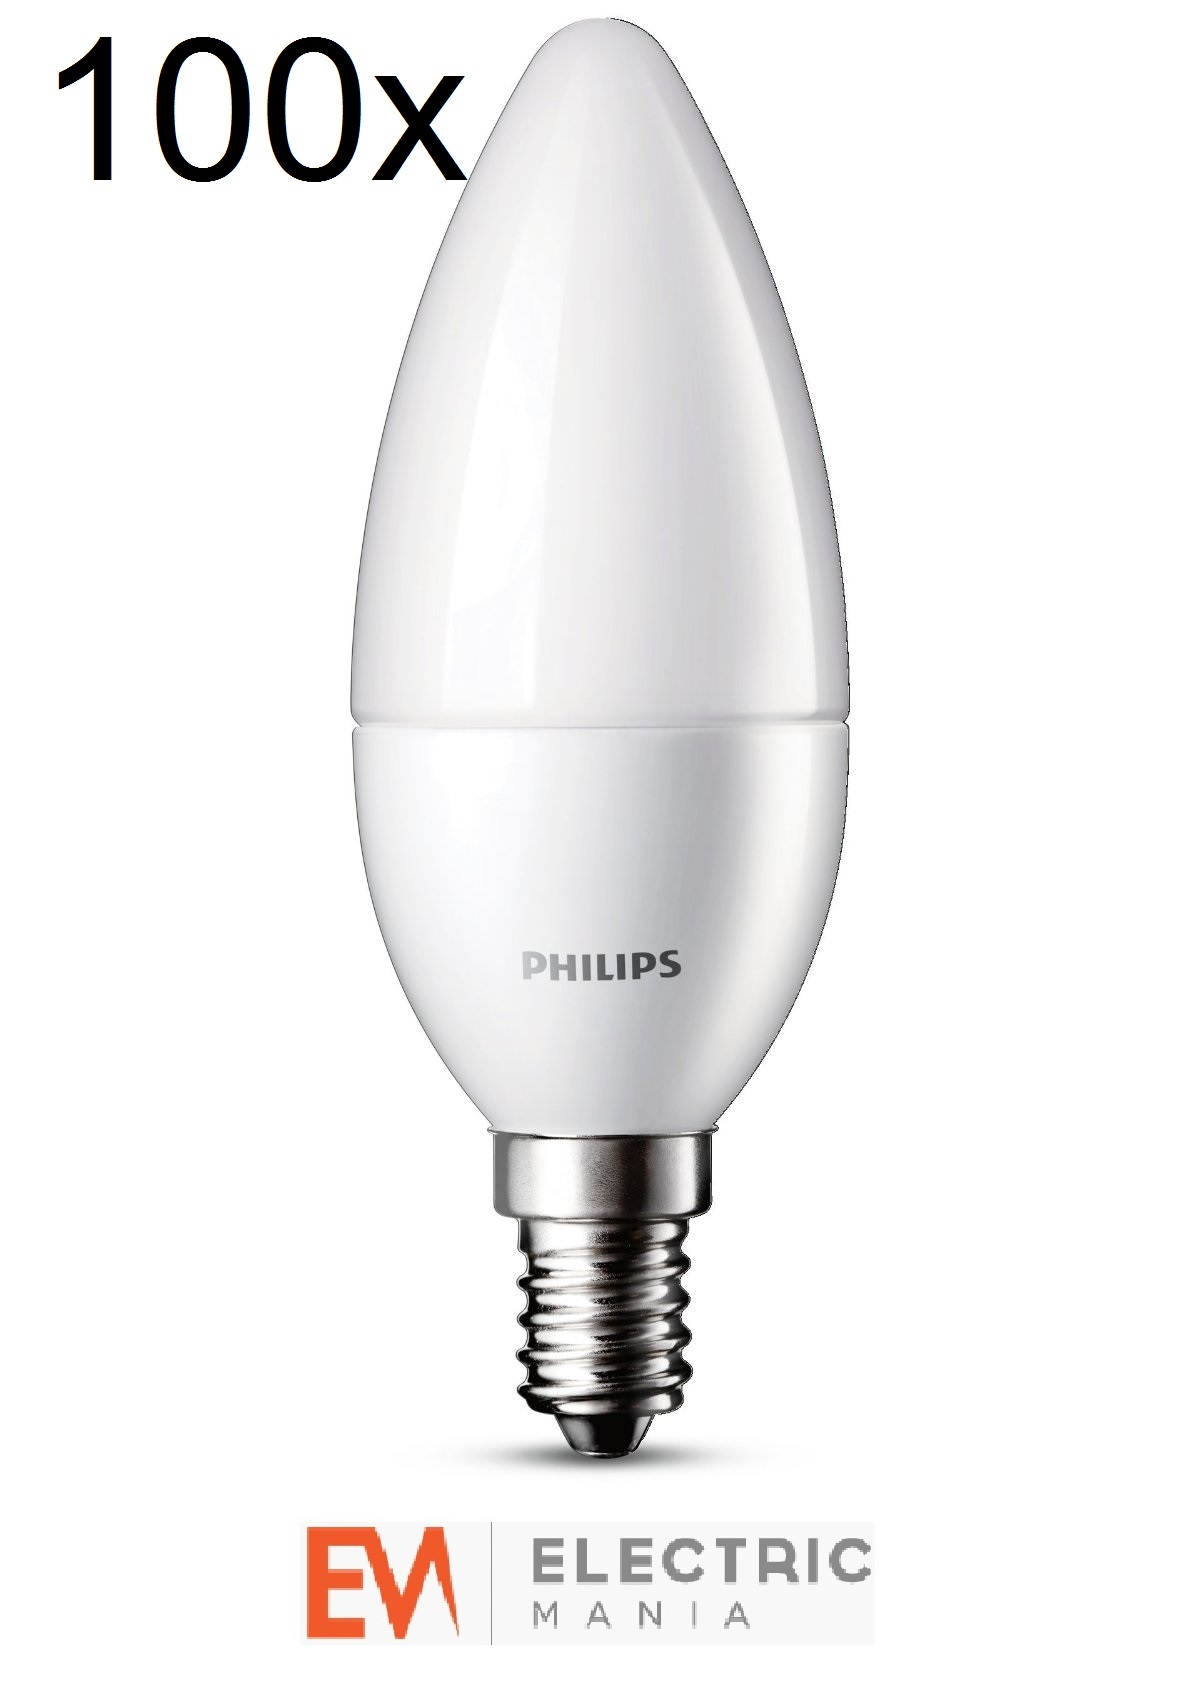 High Quality Image Is Loading 100x Philips LED Candle House Light Bulb Lamp